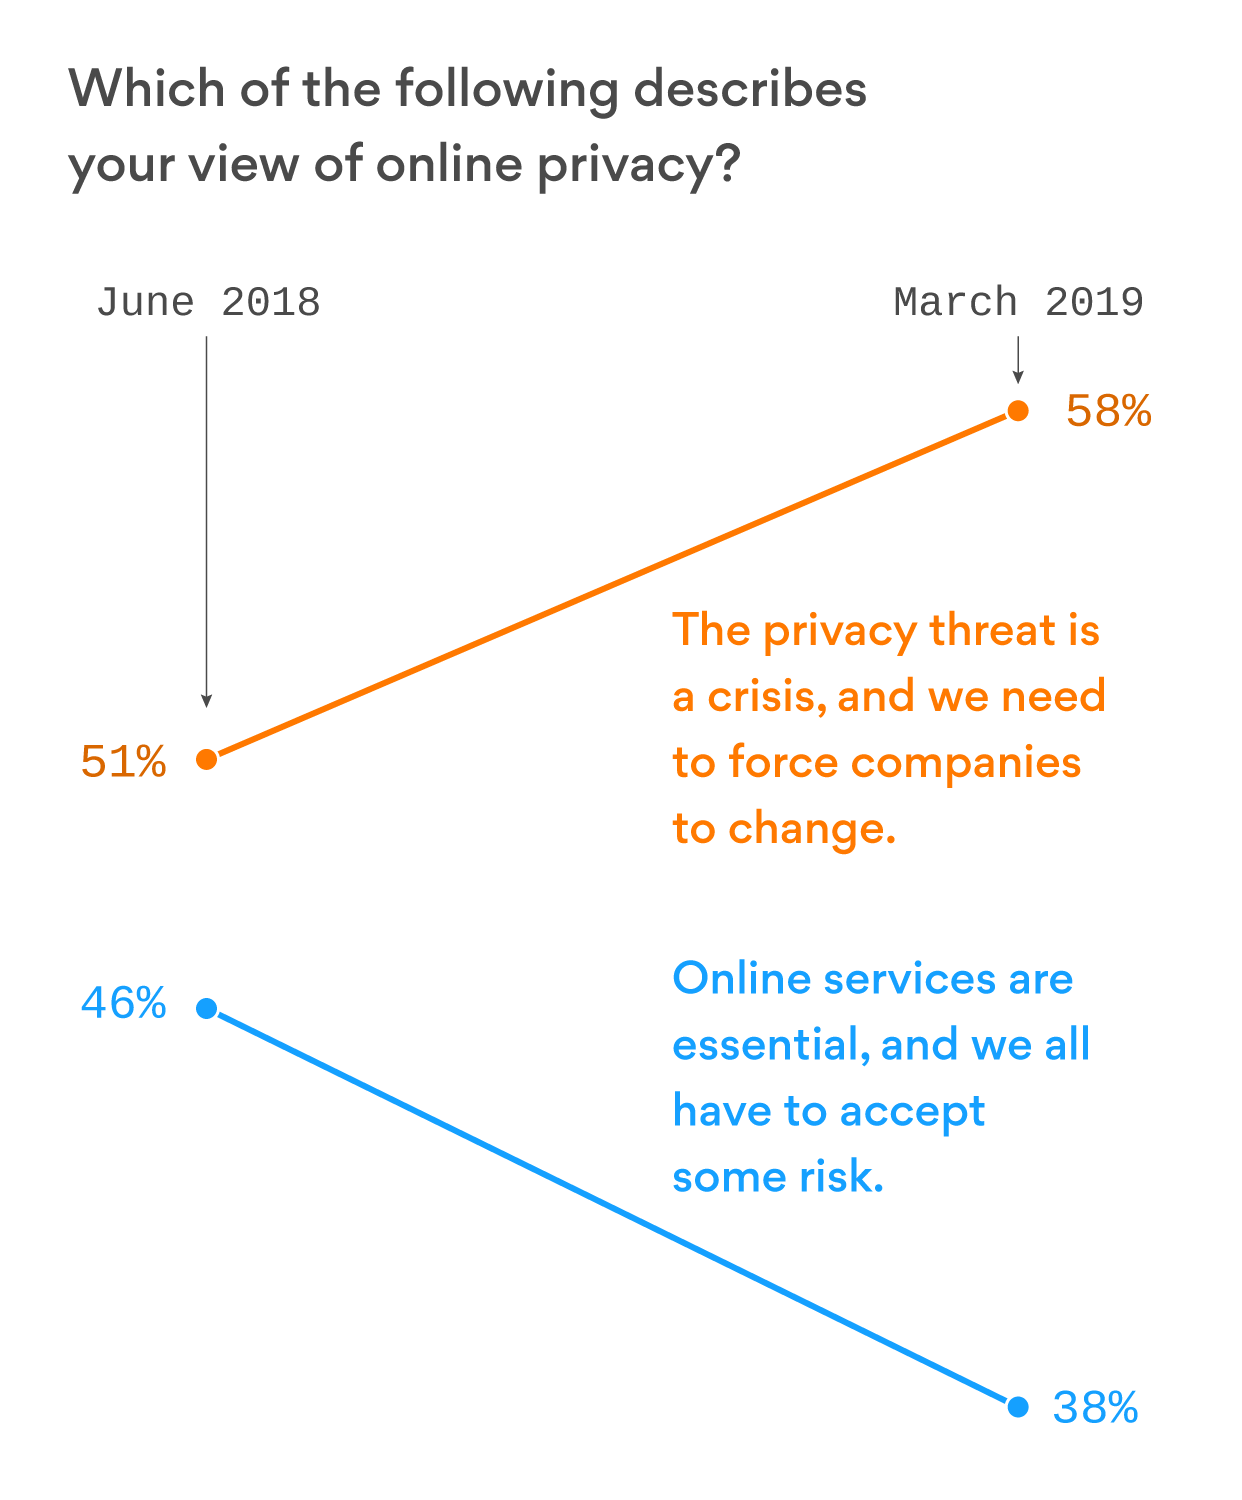 A growing majority now views our online privacy as a crisis